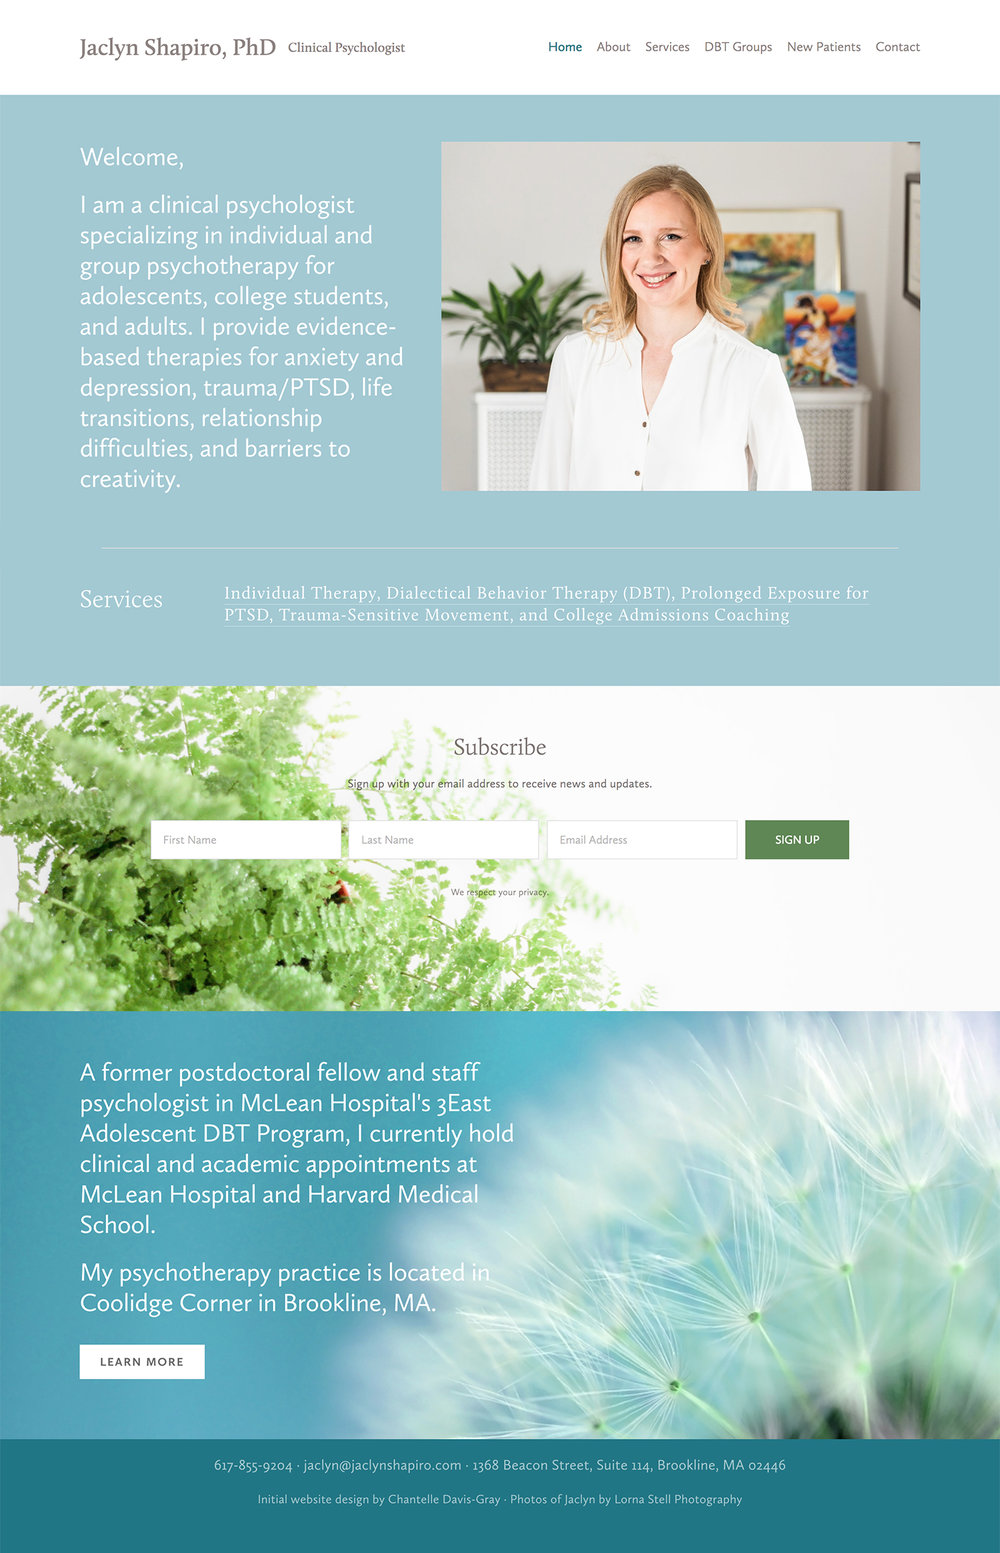 brookline psychologist's squarespace website